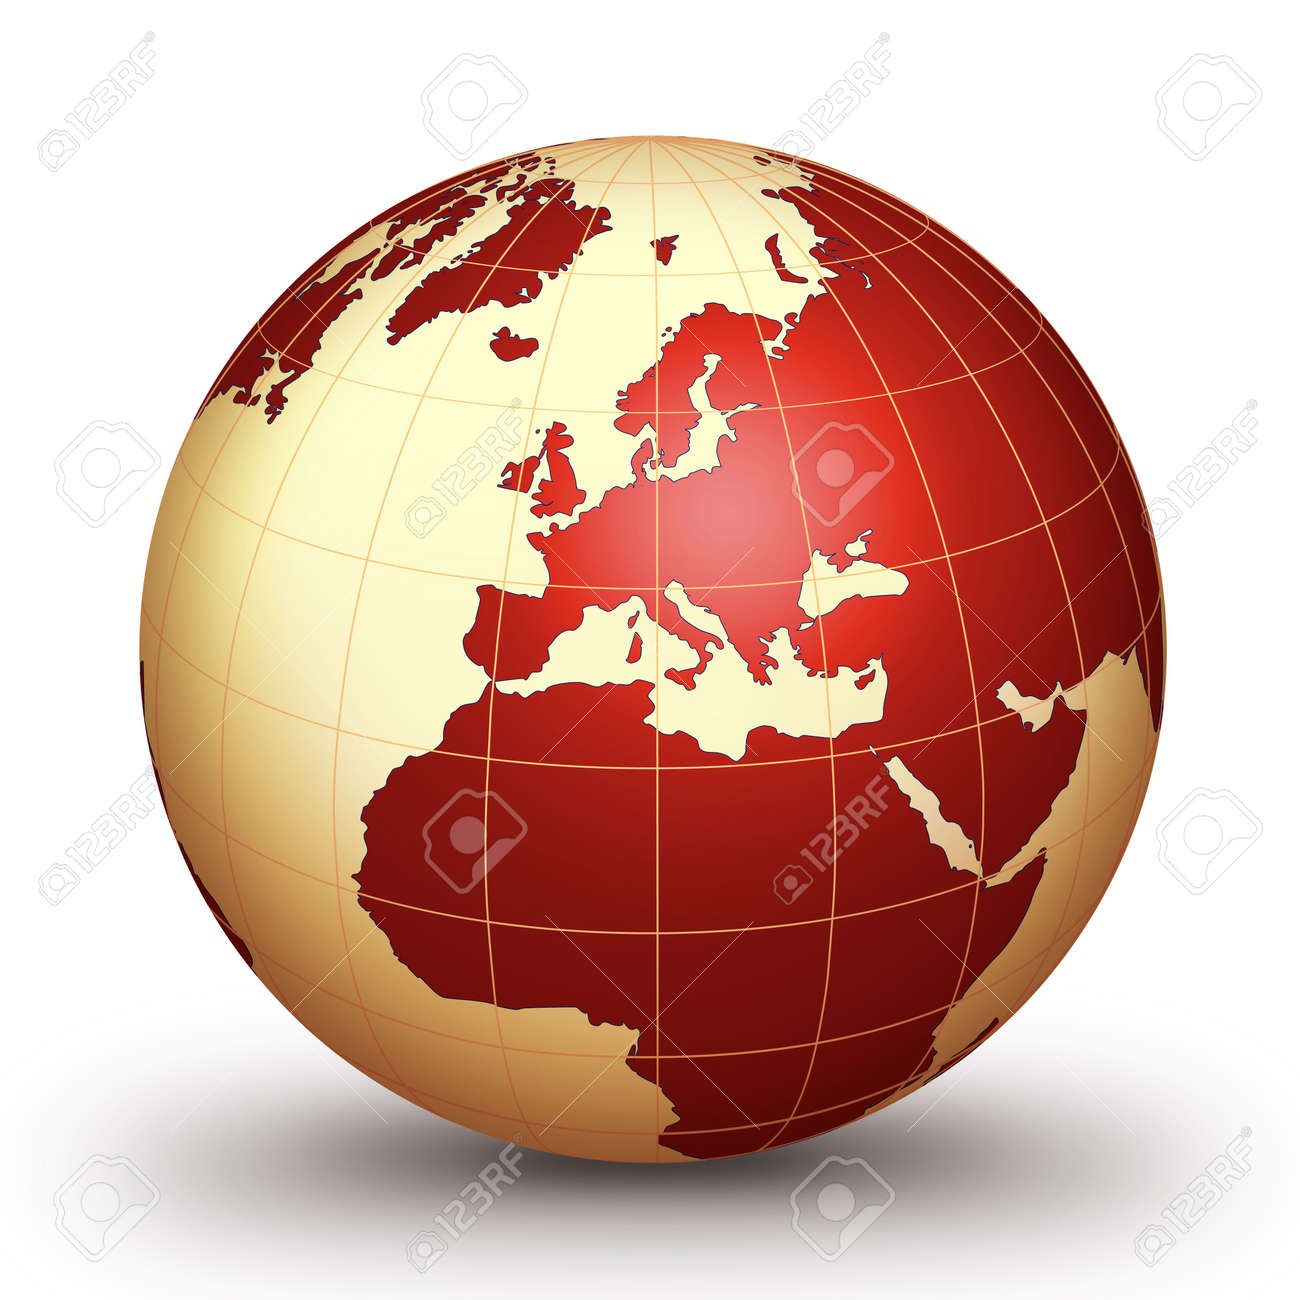 World globe - world illustration.World. Globe. World-globe Stock Illustration - 2600741